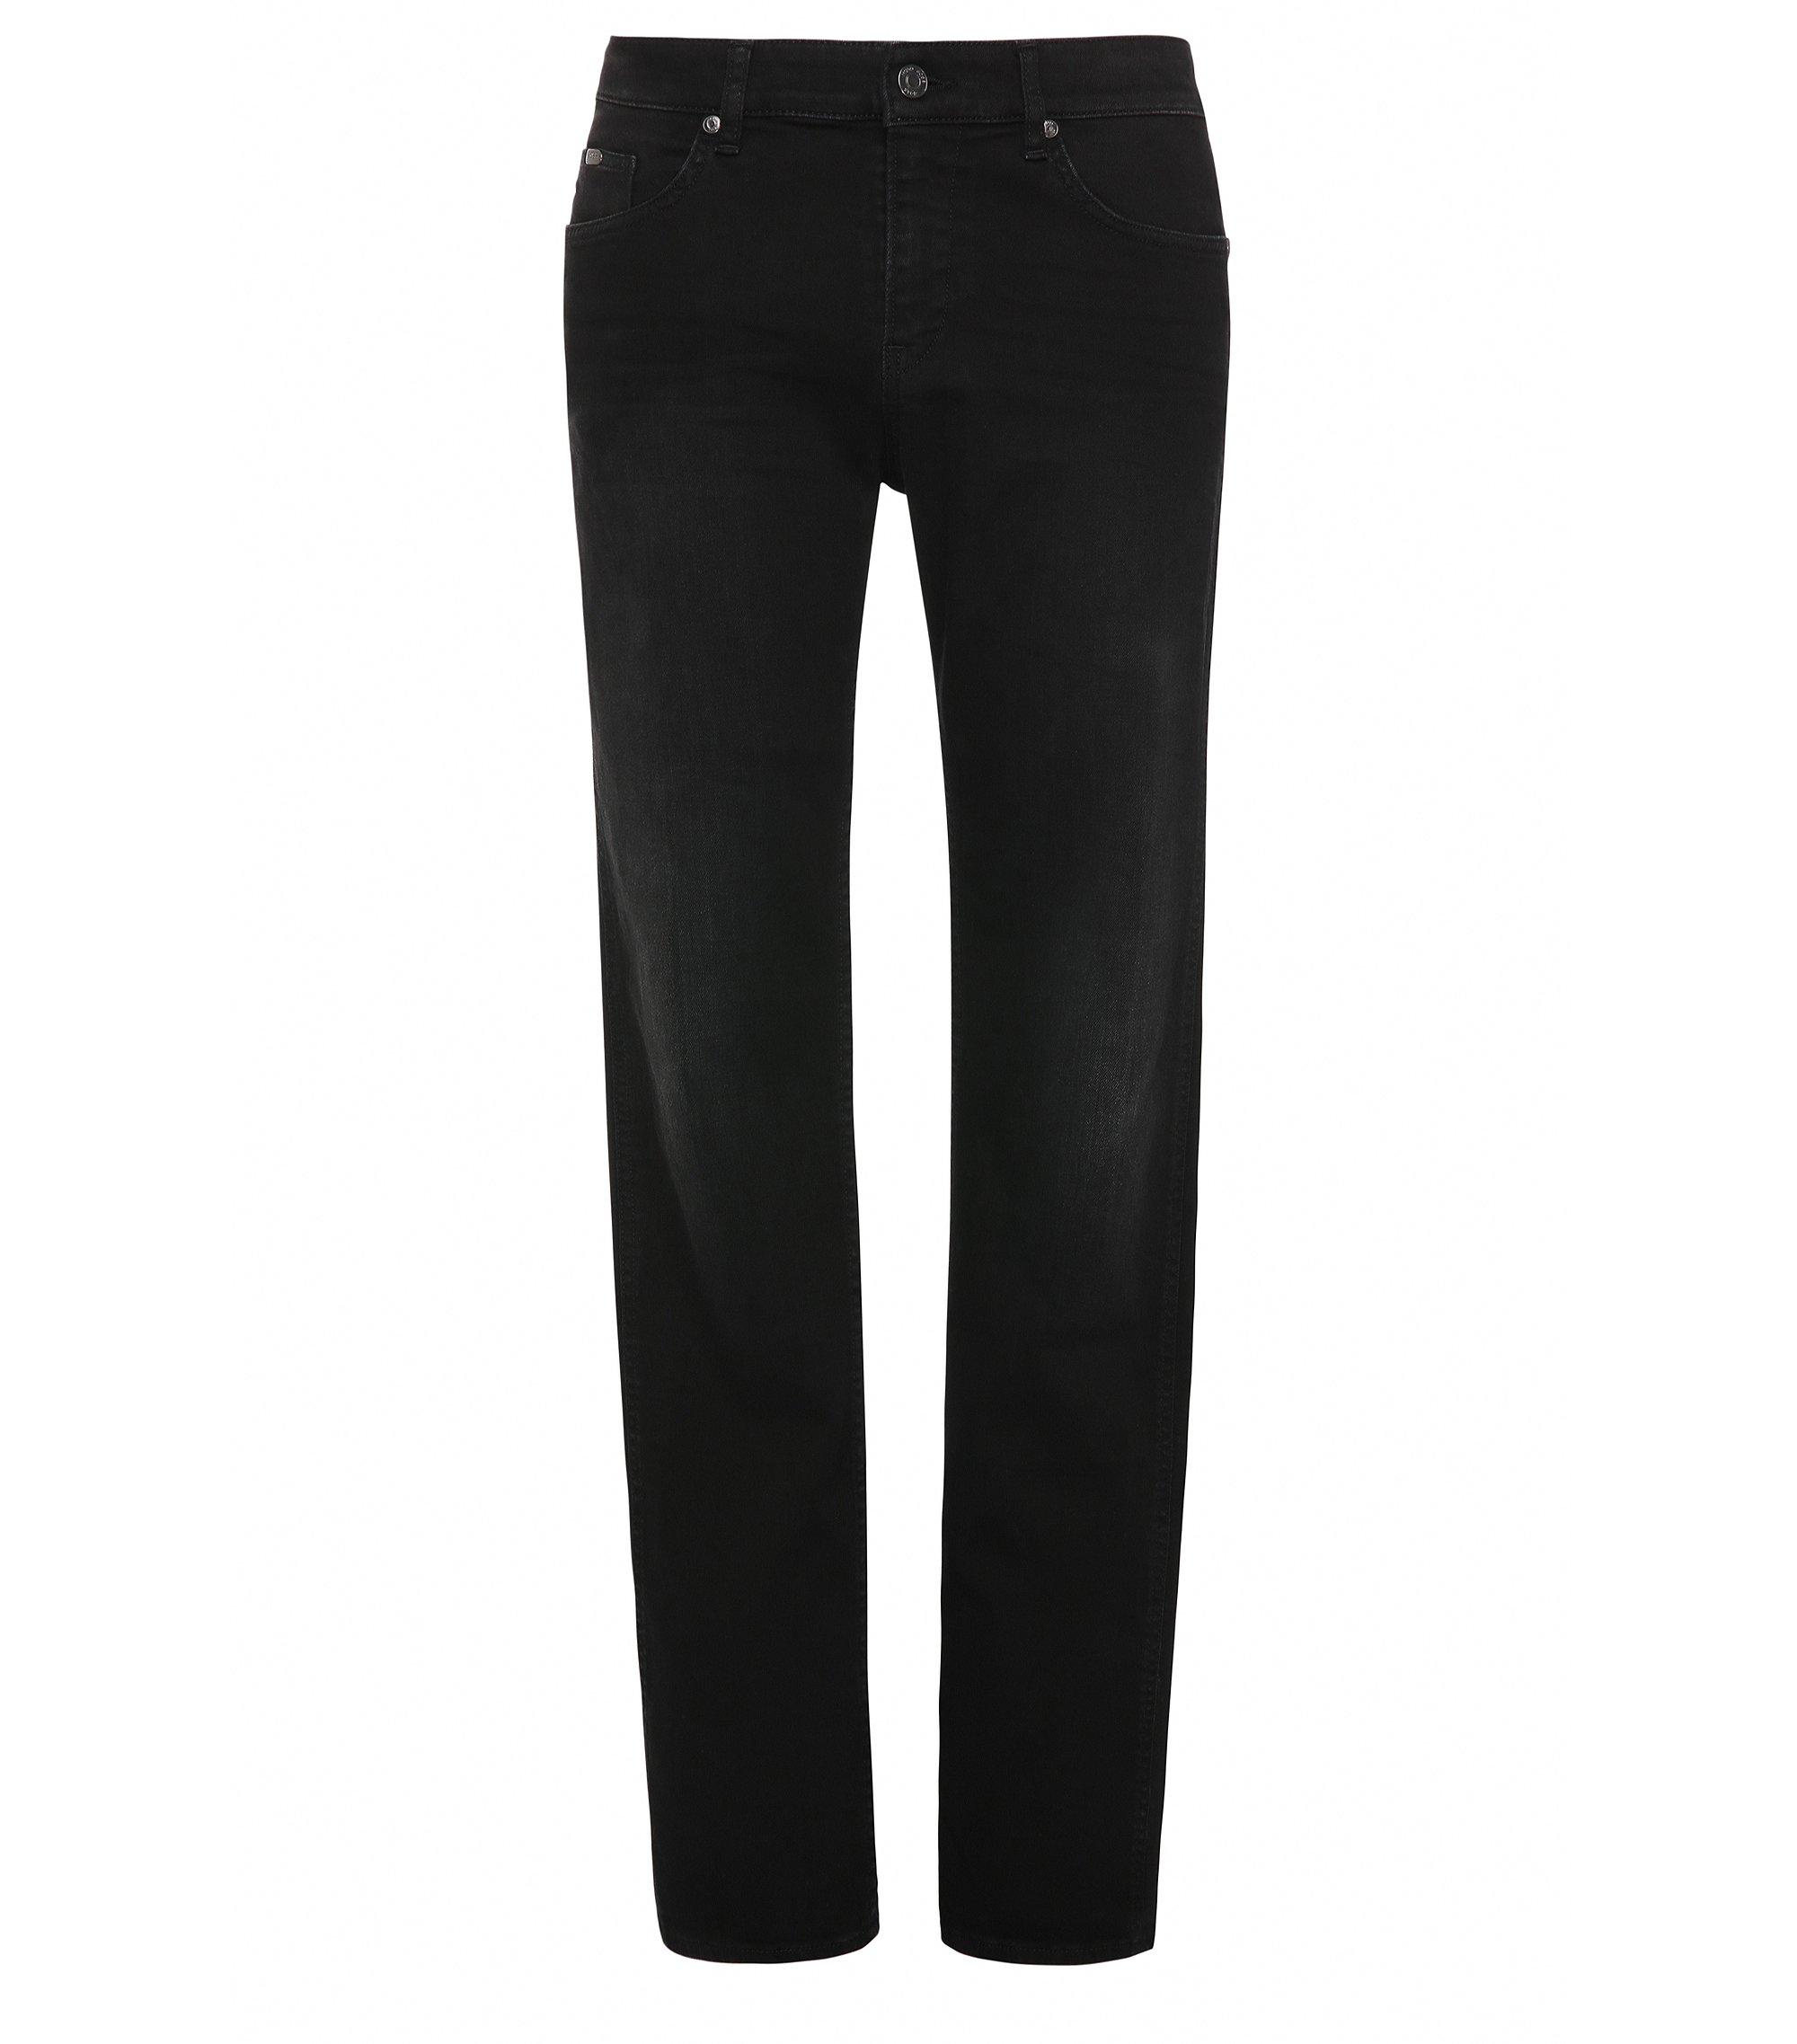 Jeans Slim Fit en coton stretch : « C-DELAWARE1 », Noir